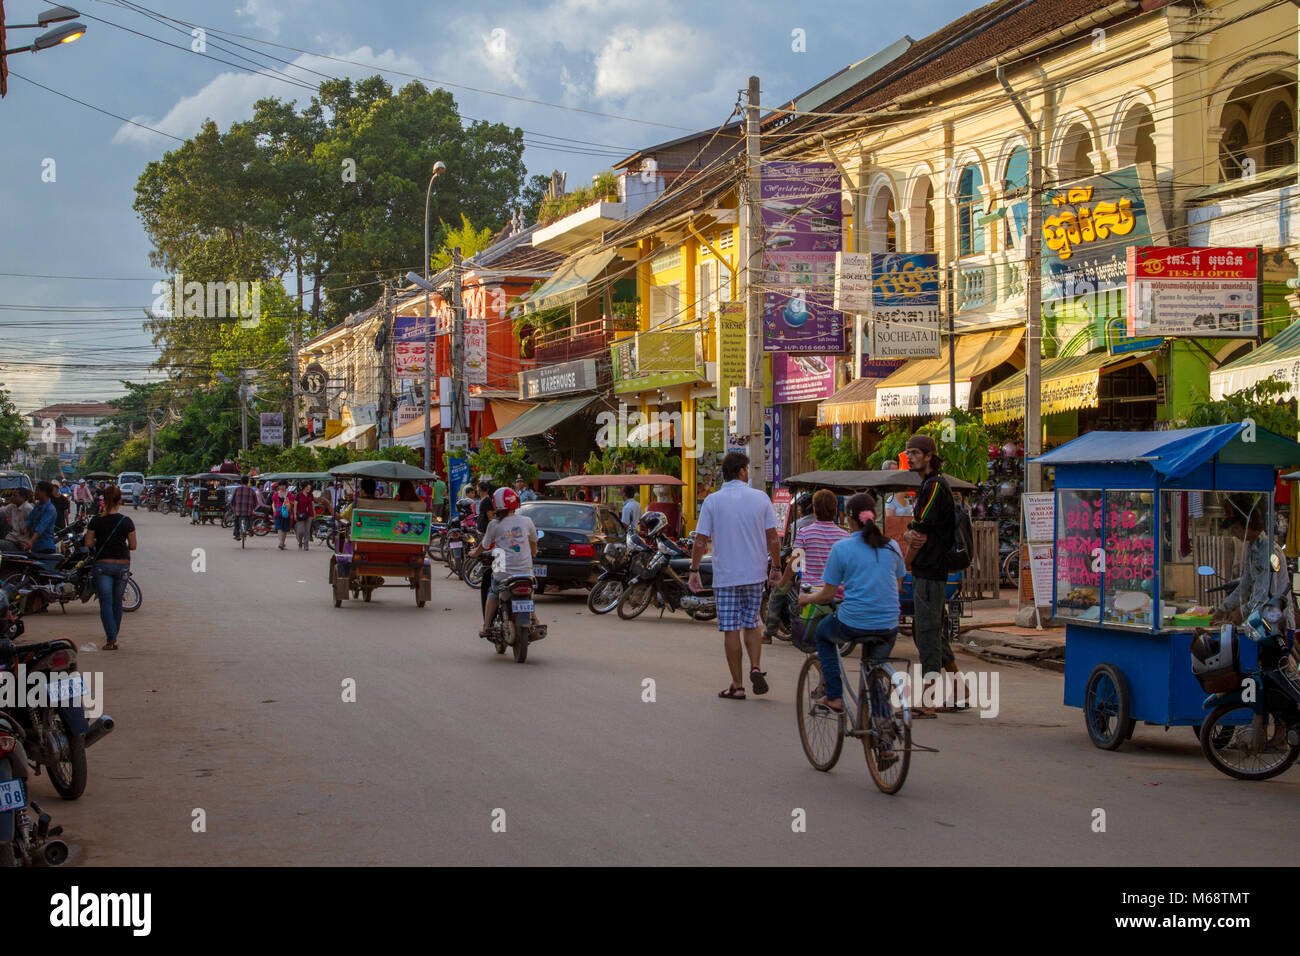 Siem Reap, Cambodia in the evening. Popular base for exploring famed UN World Heritage Site Angkor Wat. - Stock Image